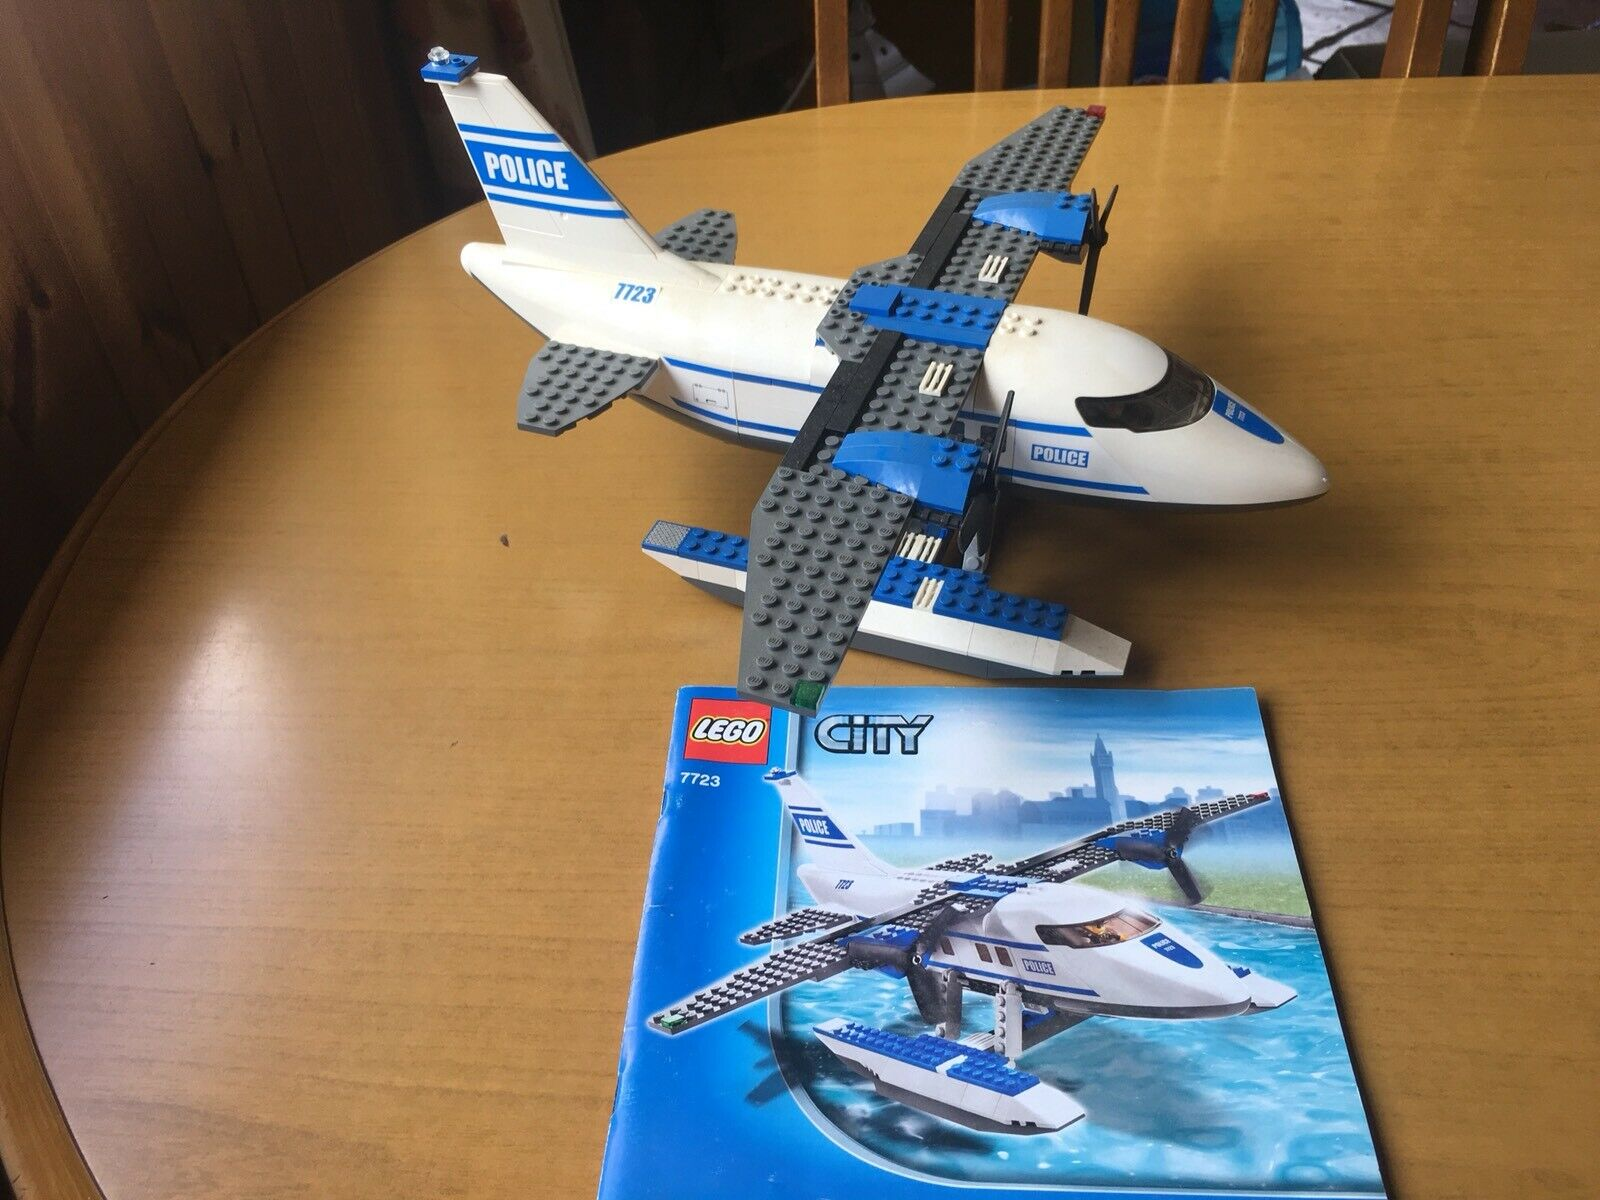 Lego City (7723) Police Pontoon Plane. Excellent Condition